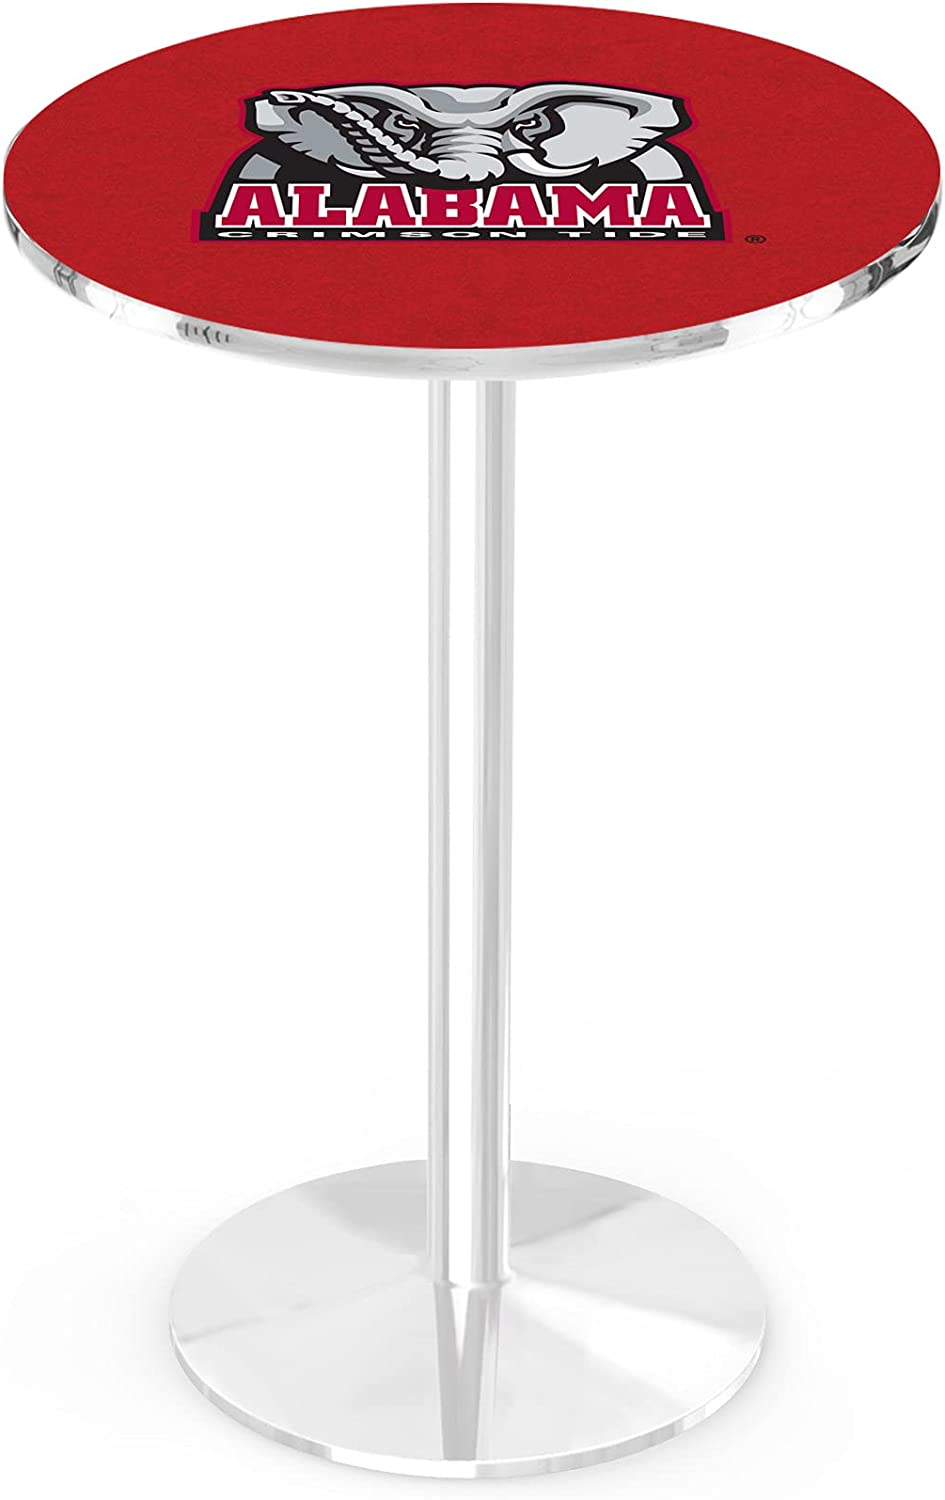 Holland Bar Stool L214C University of Logo Special price Of Outlet sale feature Alabama Elephant